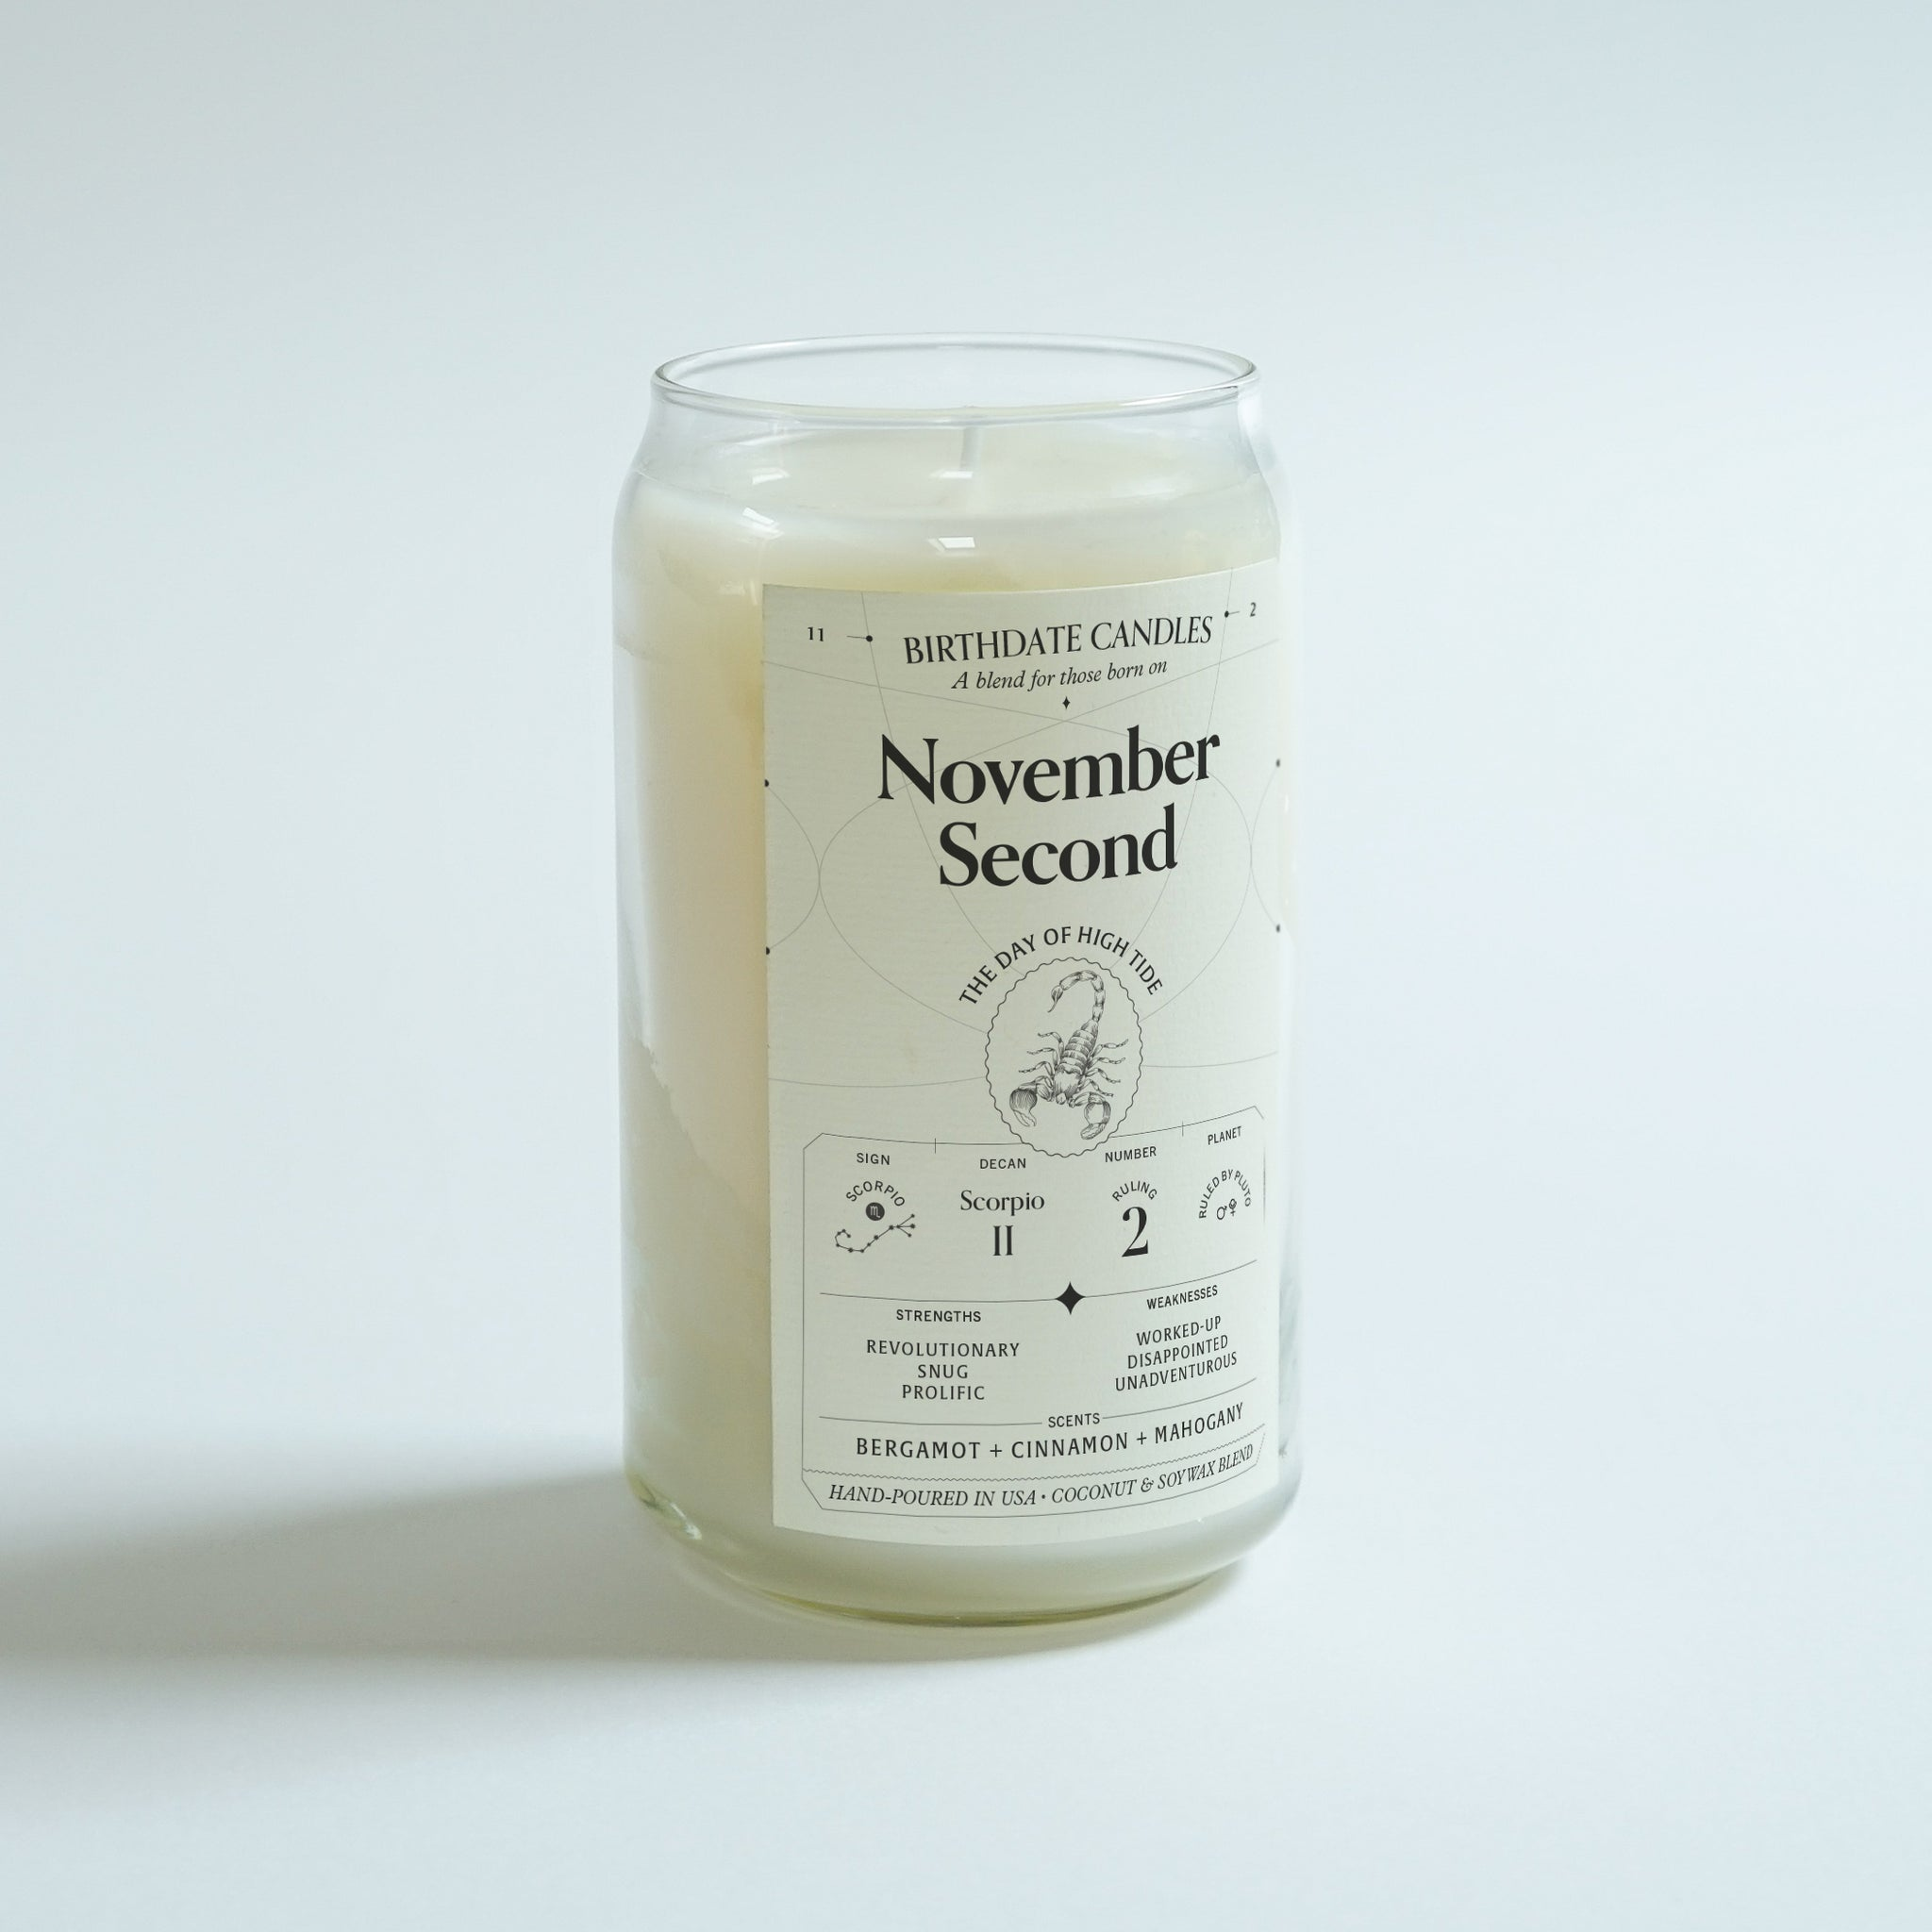 The November Second Birthday Candle